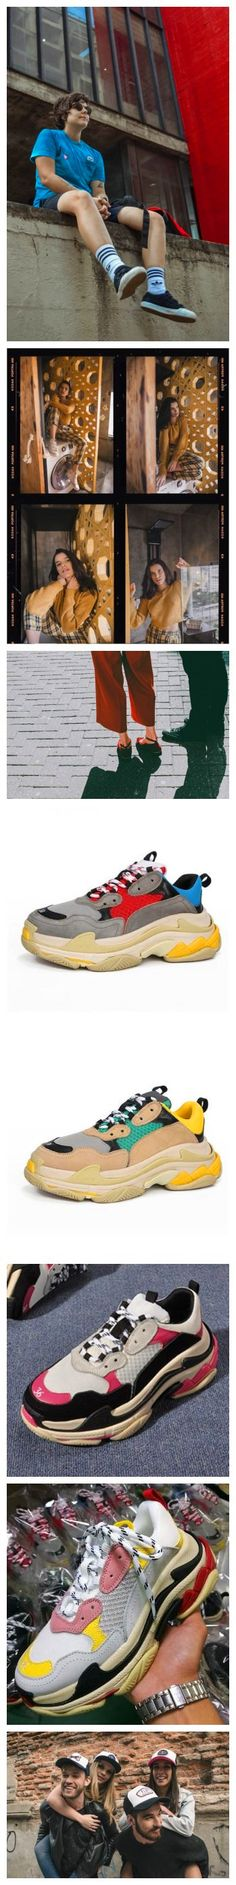 Sneakers Spell Color Platform Shoes For Cheap - Women Shoes Large Size Shoes, Cheap Womens Shoes, Walking Shoes, Platform Shoes, Oakley Sunglasses, Lace, Sneakers, Casual, Leather